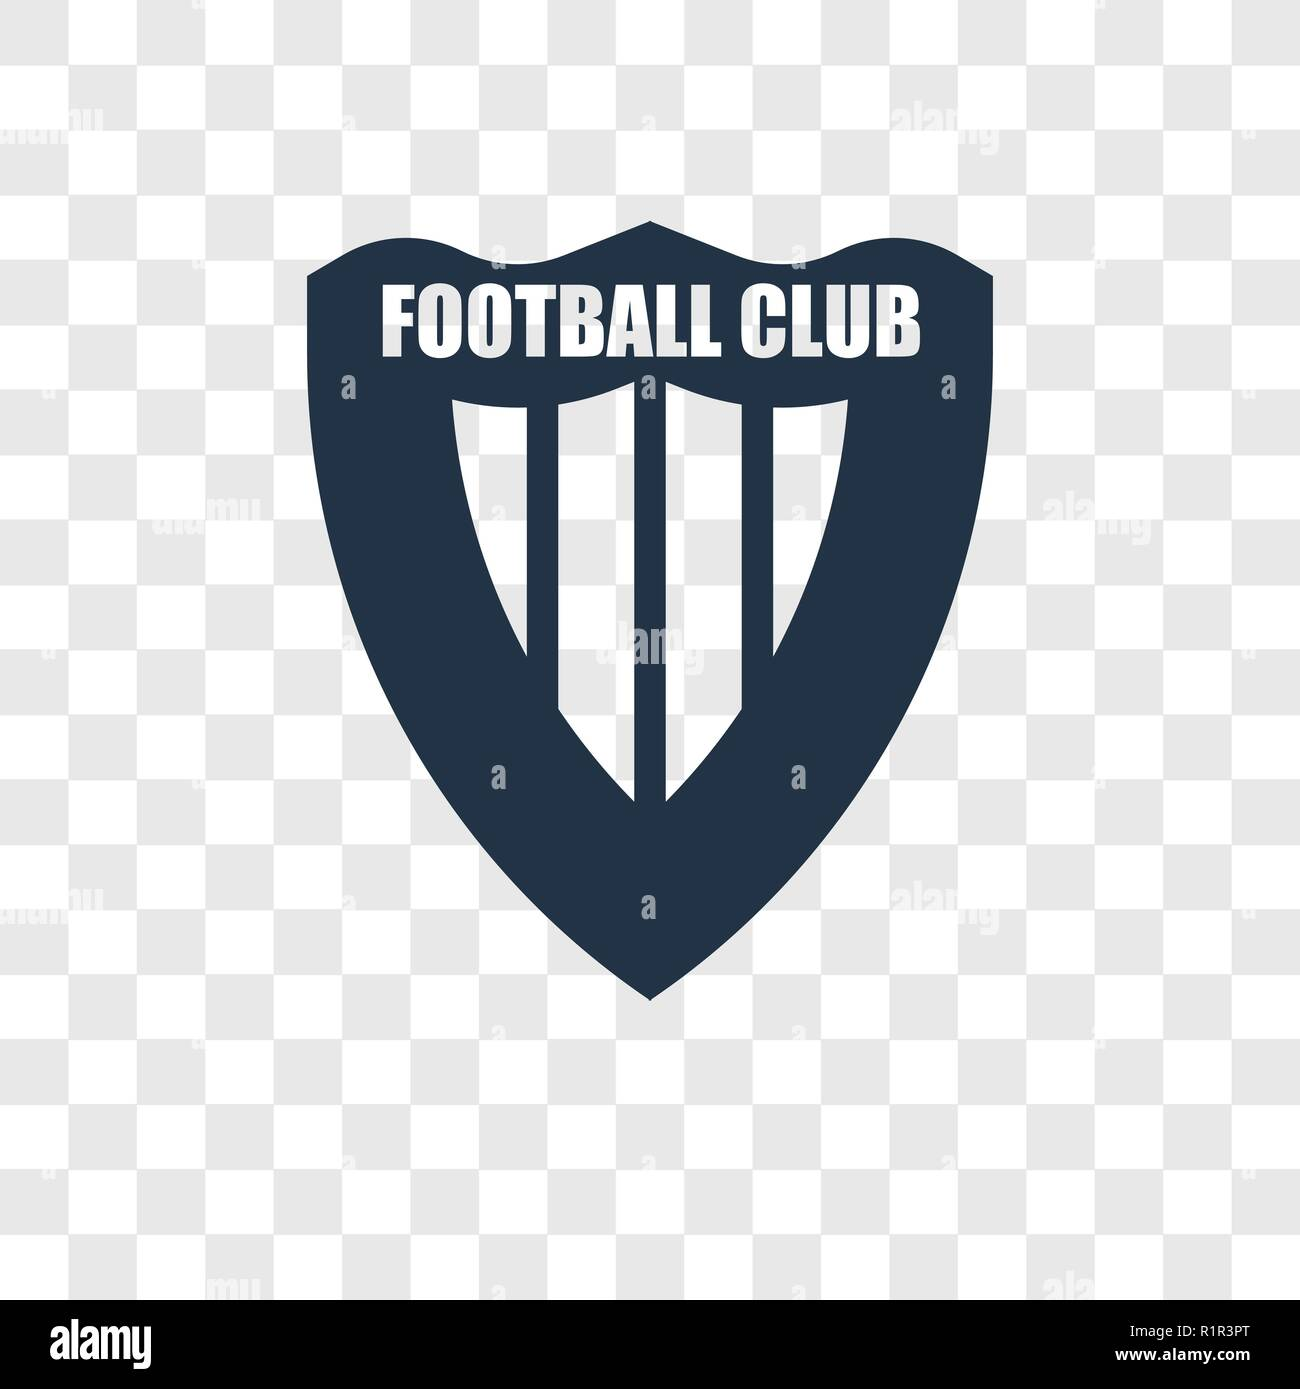 Football Club Vector Icon Isolated On Transparent Background